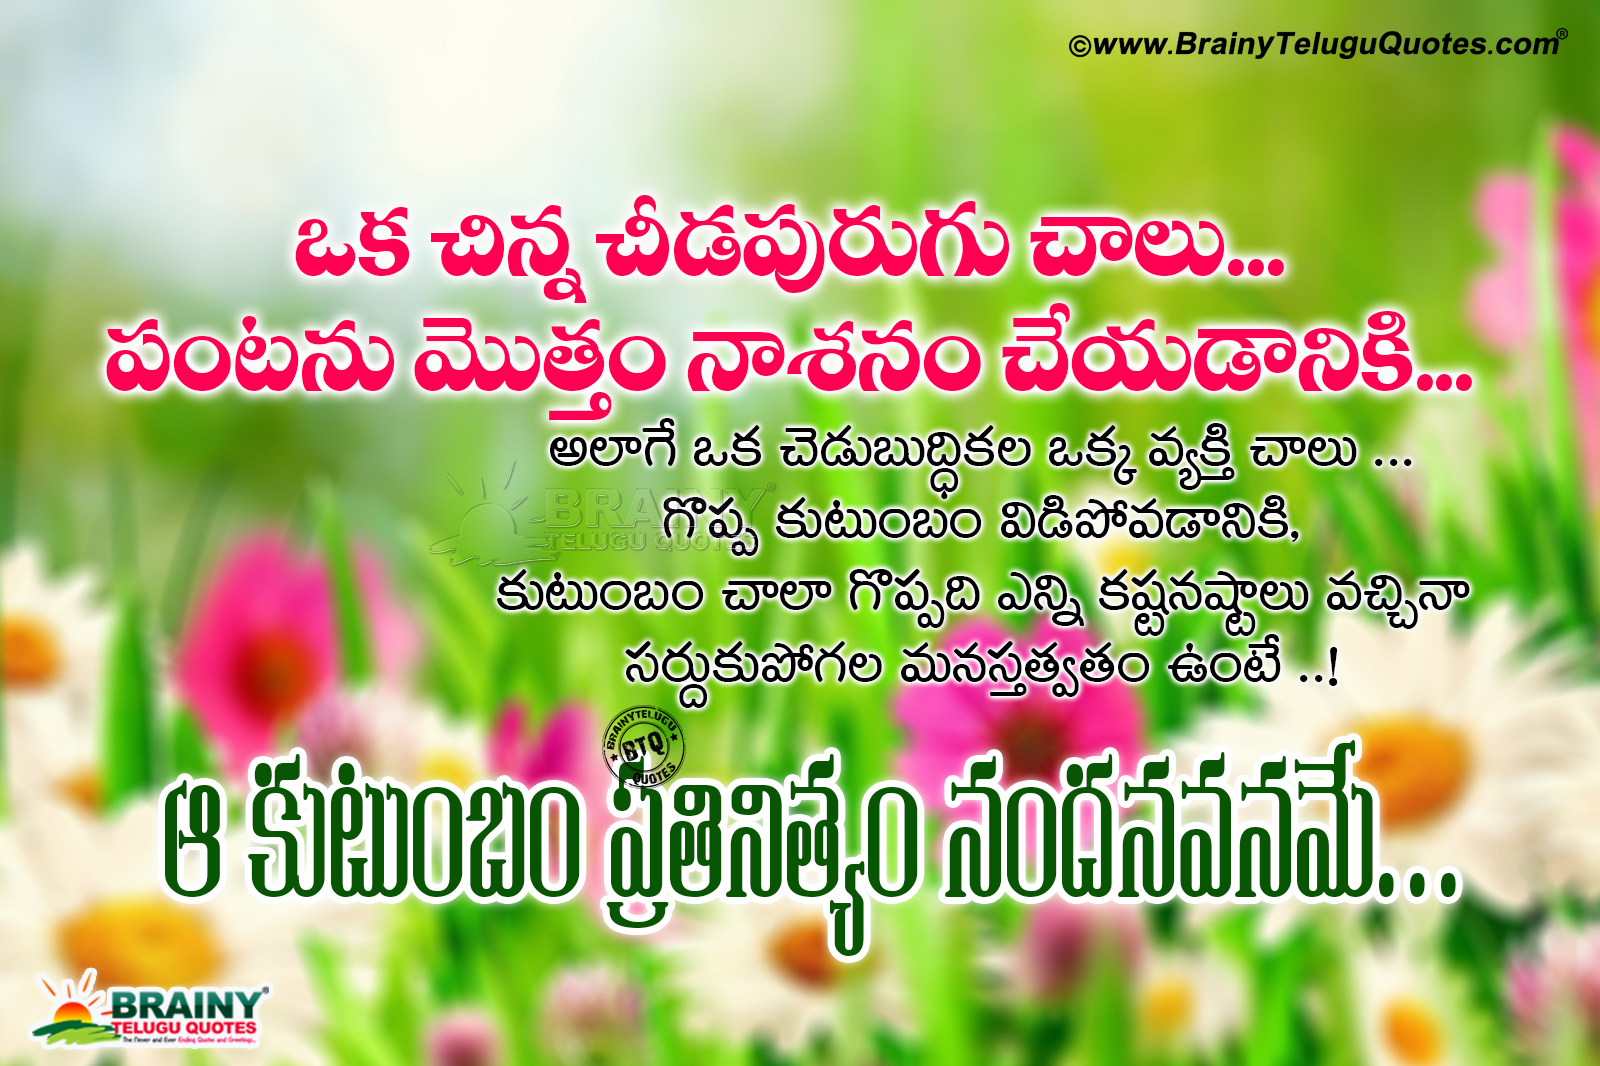 Latest Telugu Family Importance Quotes Messages Greatness Of Family Messages In Telugu Brainyteluguquotes Comtelugu Quotes English Quotes Hindi Quotes Tamil Quotes Greetings